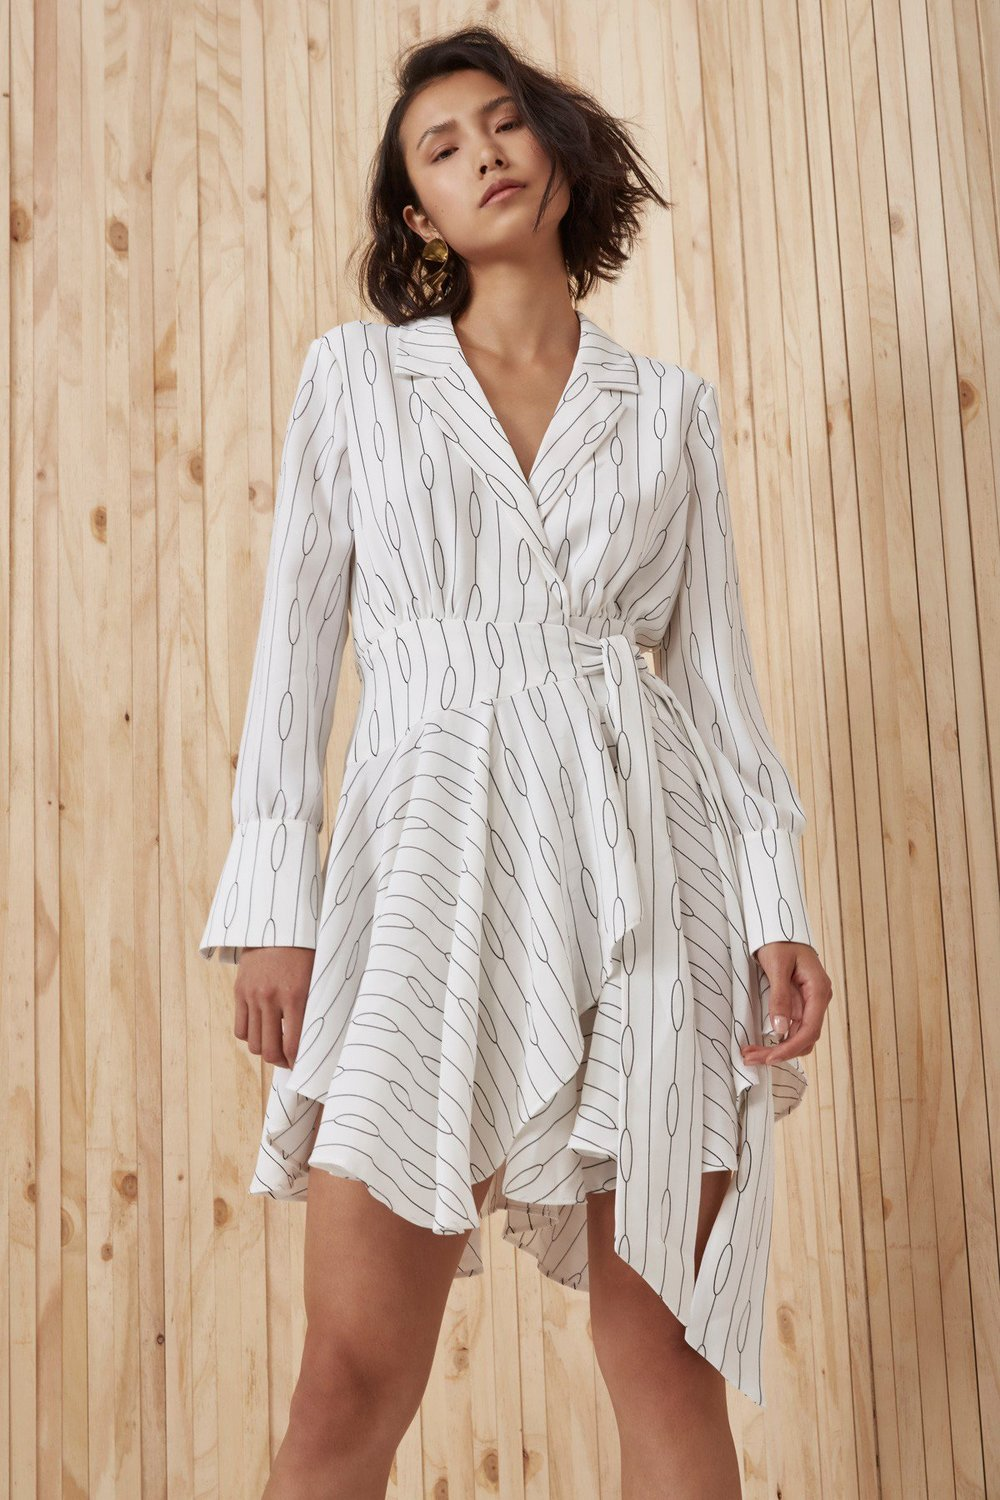 Shop C/MEO Everlasting Long Sleeve Dress.